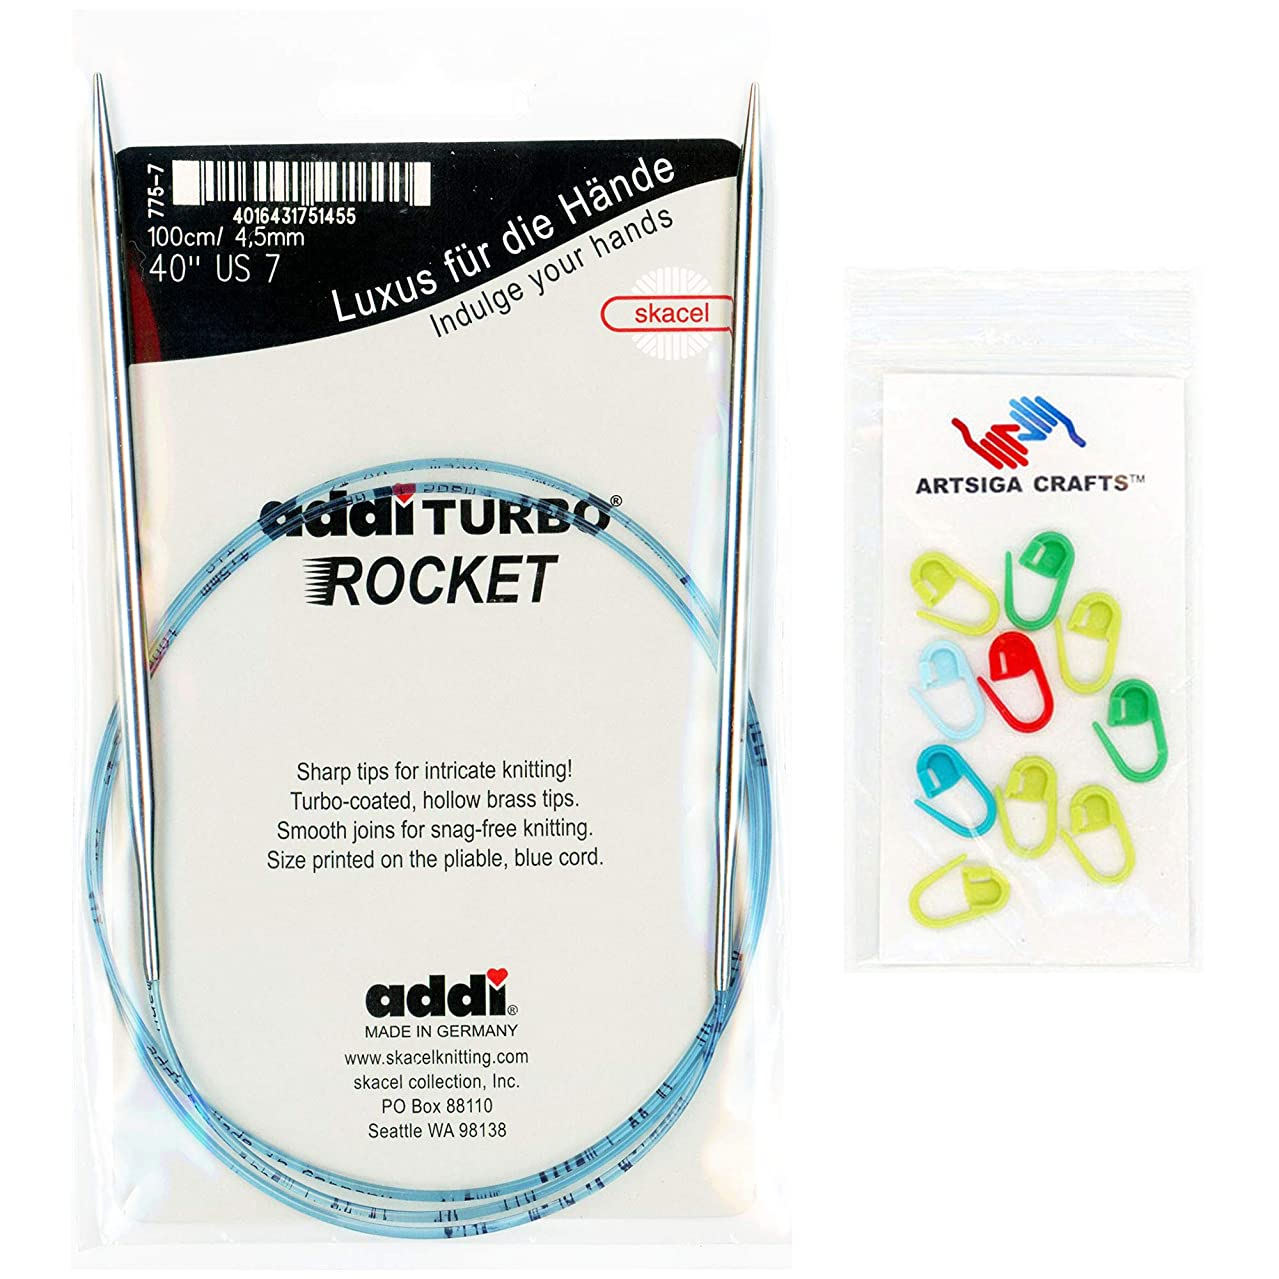 addi Knitting Needle Circular Turbo Rocket Lace White-Bronze Skacel Exclusive Blue Cord 47 inch (120cm) Size US 1 (2.5mm) Bundle with 10 Artsiga Crafts Stitch Markers